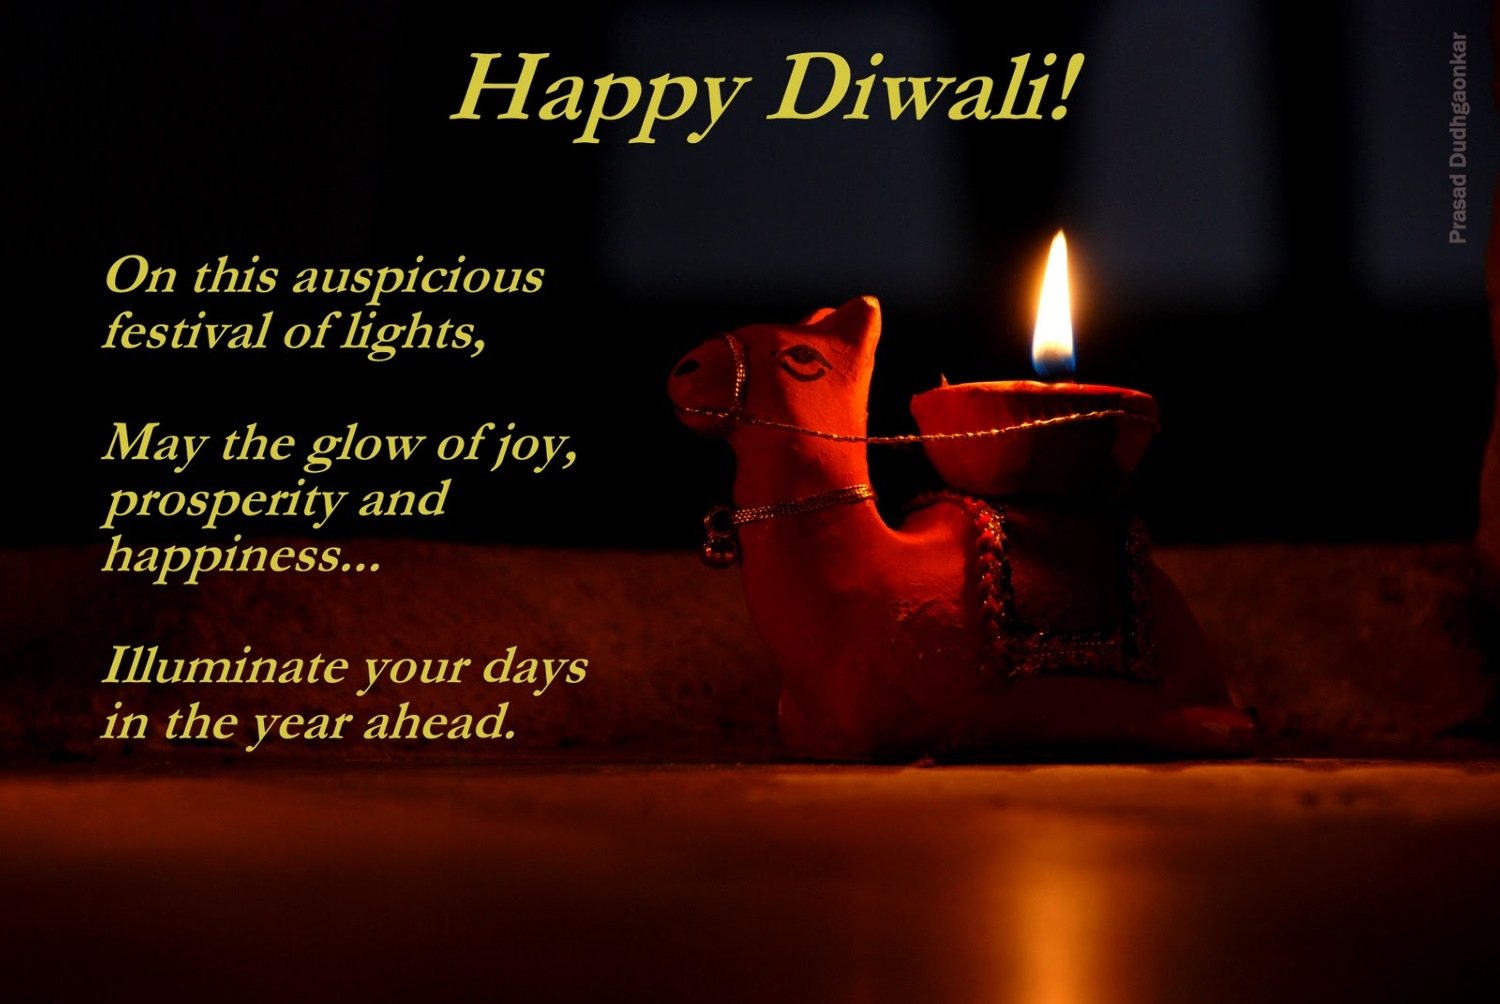 Diwali wishes greetings images choice image greeting card examples happy diwali greetings wishes family friends 3d diwali 2018 happy diwali greetings wishes family friends 3d kristyandbryce Gallery